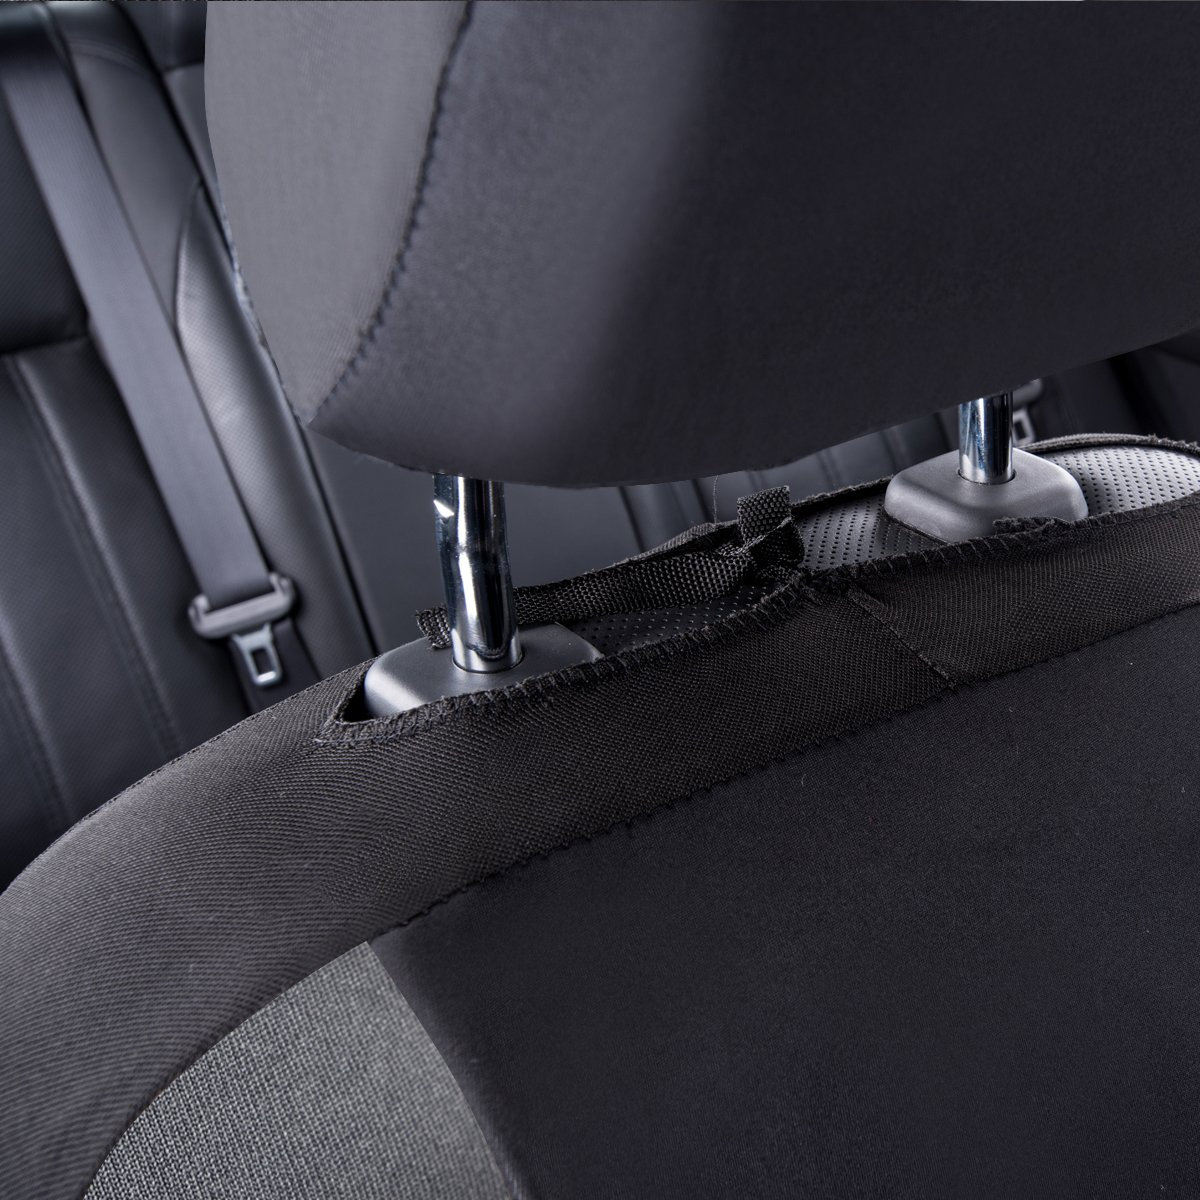 Universal fit for vehicles Car With 5mm Composite Sponge Inside,Airbag Compatiable CAR PASS Neoprene 6PCS waterproof Two front seat car seat covers set Black And Black HOLIDAY SALE